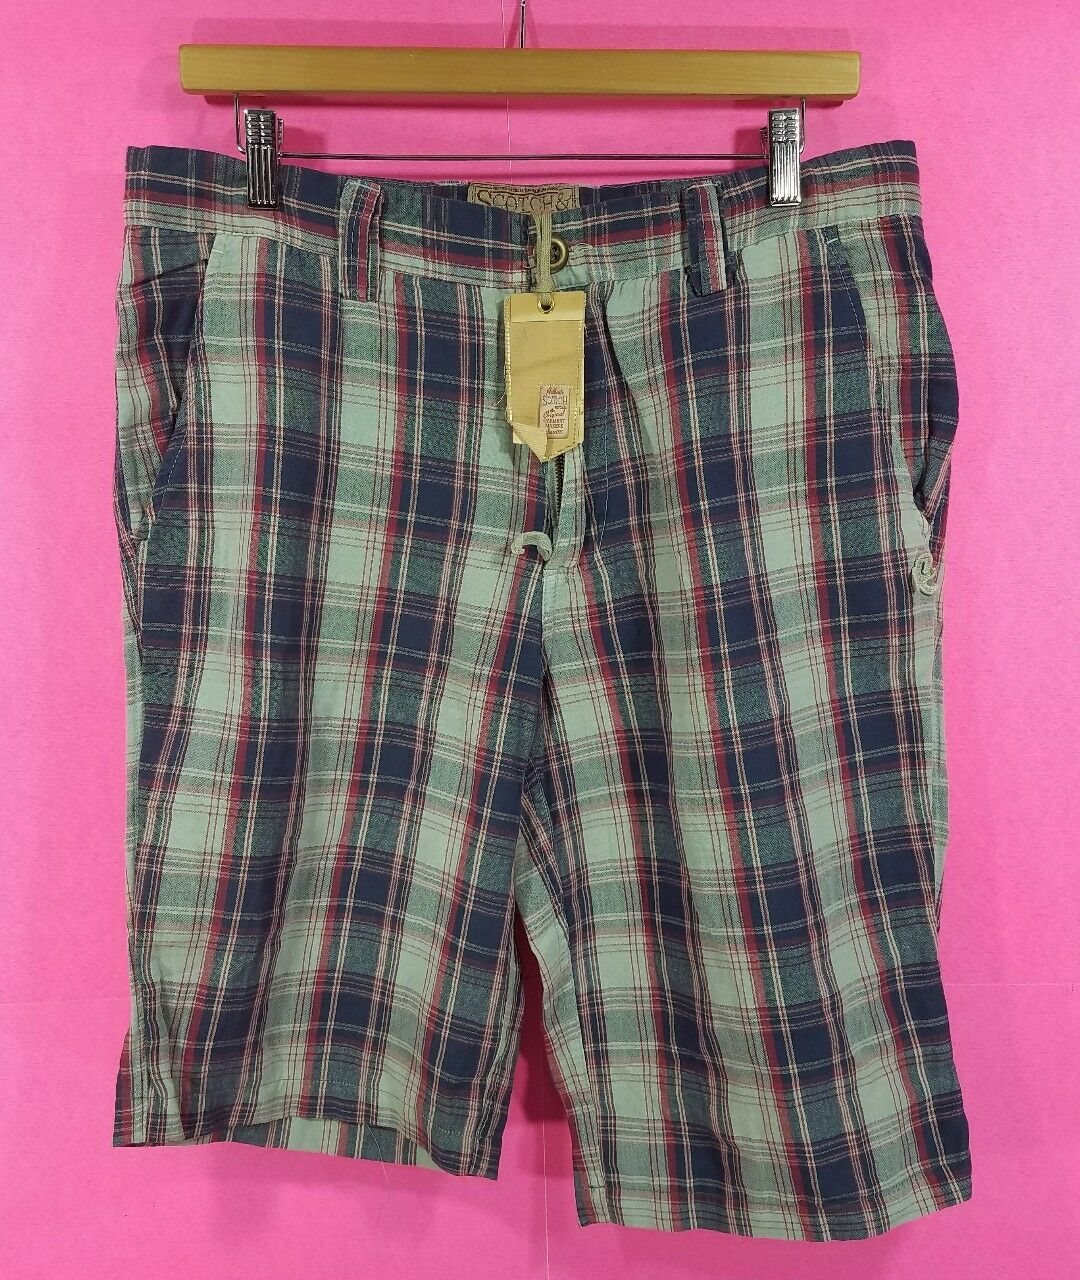 NEW Men's Scotch And Soda Co. Plaid Casual Shorts Size L Large bluee Red